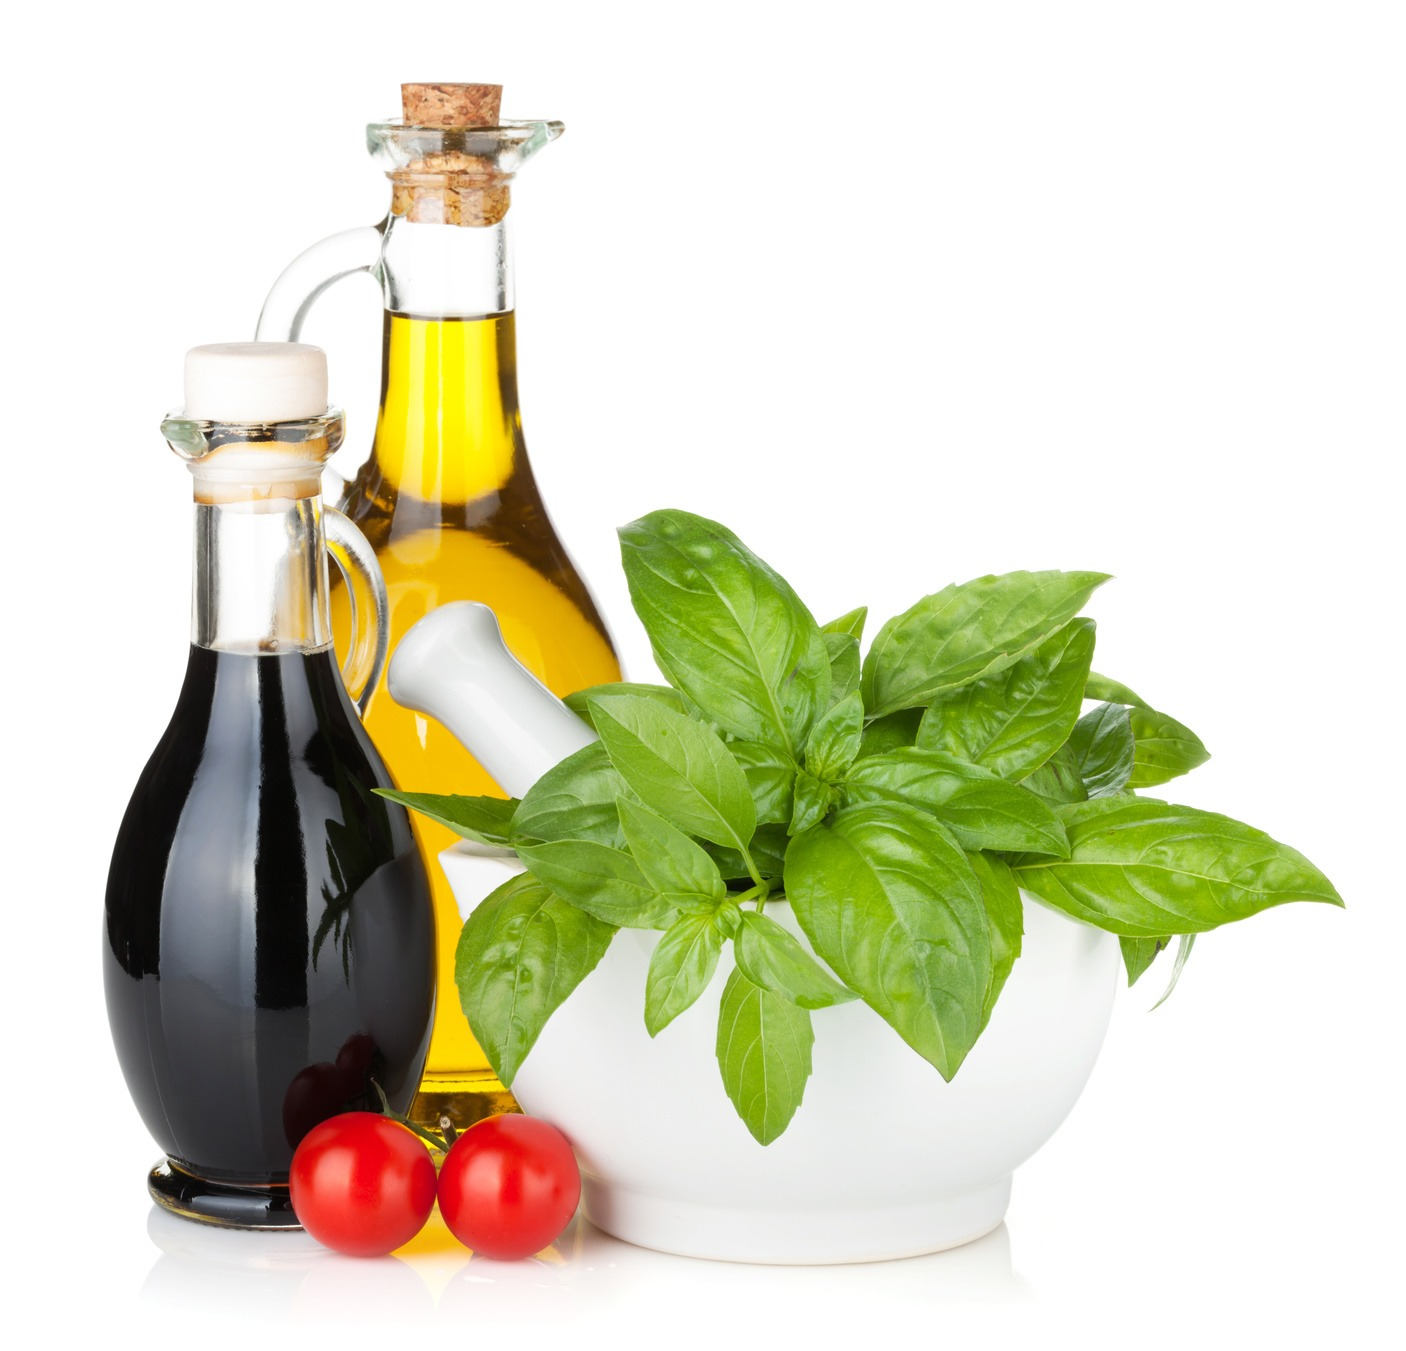 Olive oil, vinegar bottles with basil and tomatoes. Isolated on white background